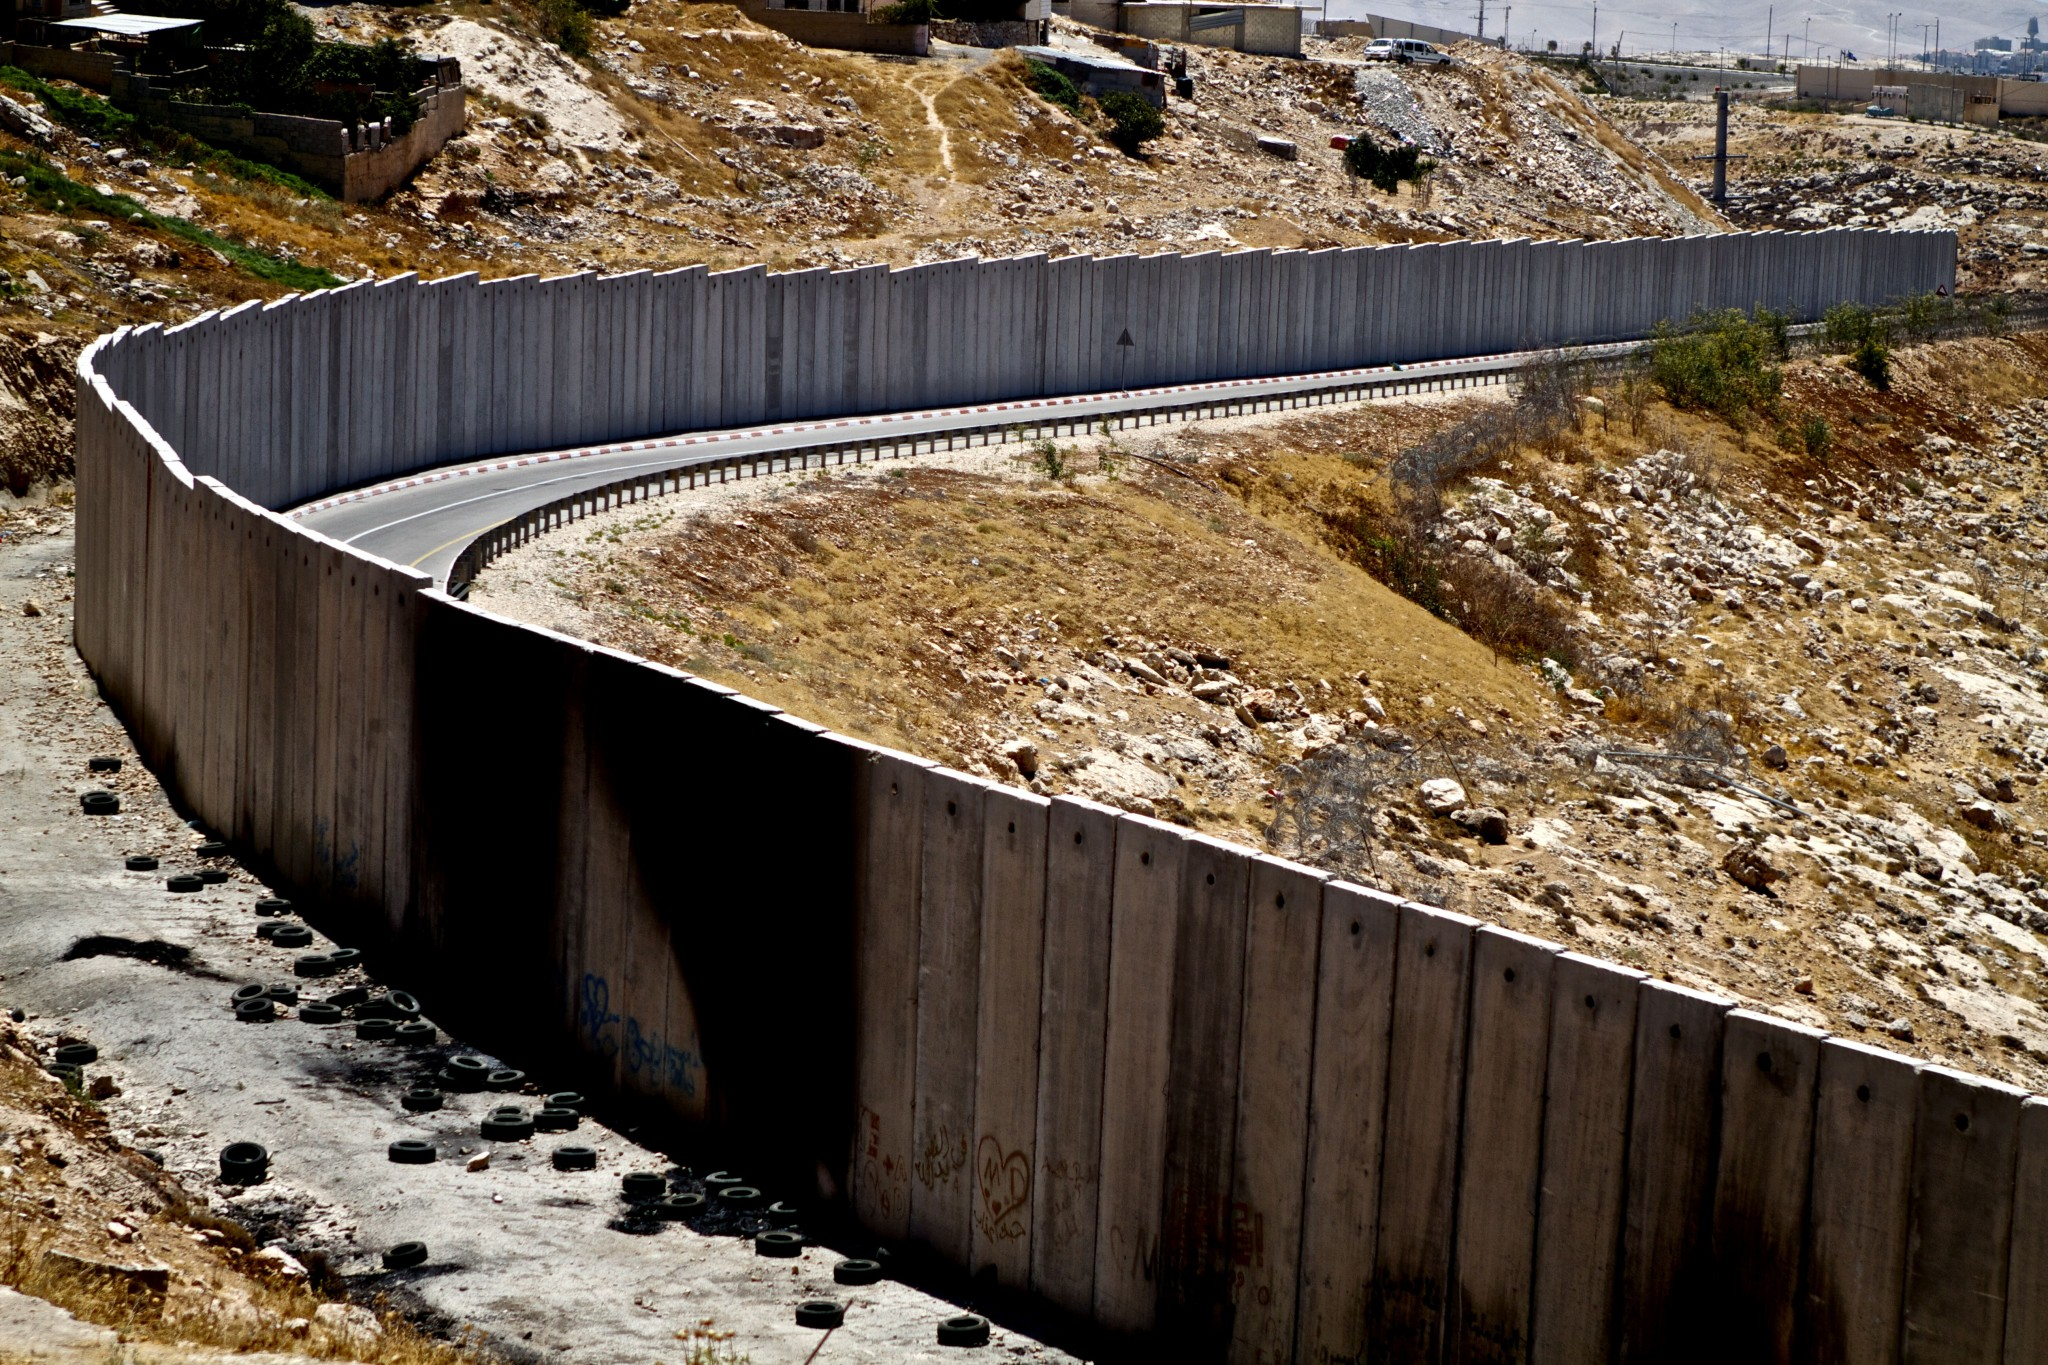 a picture of the Israeli wall